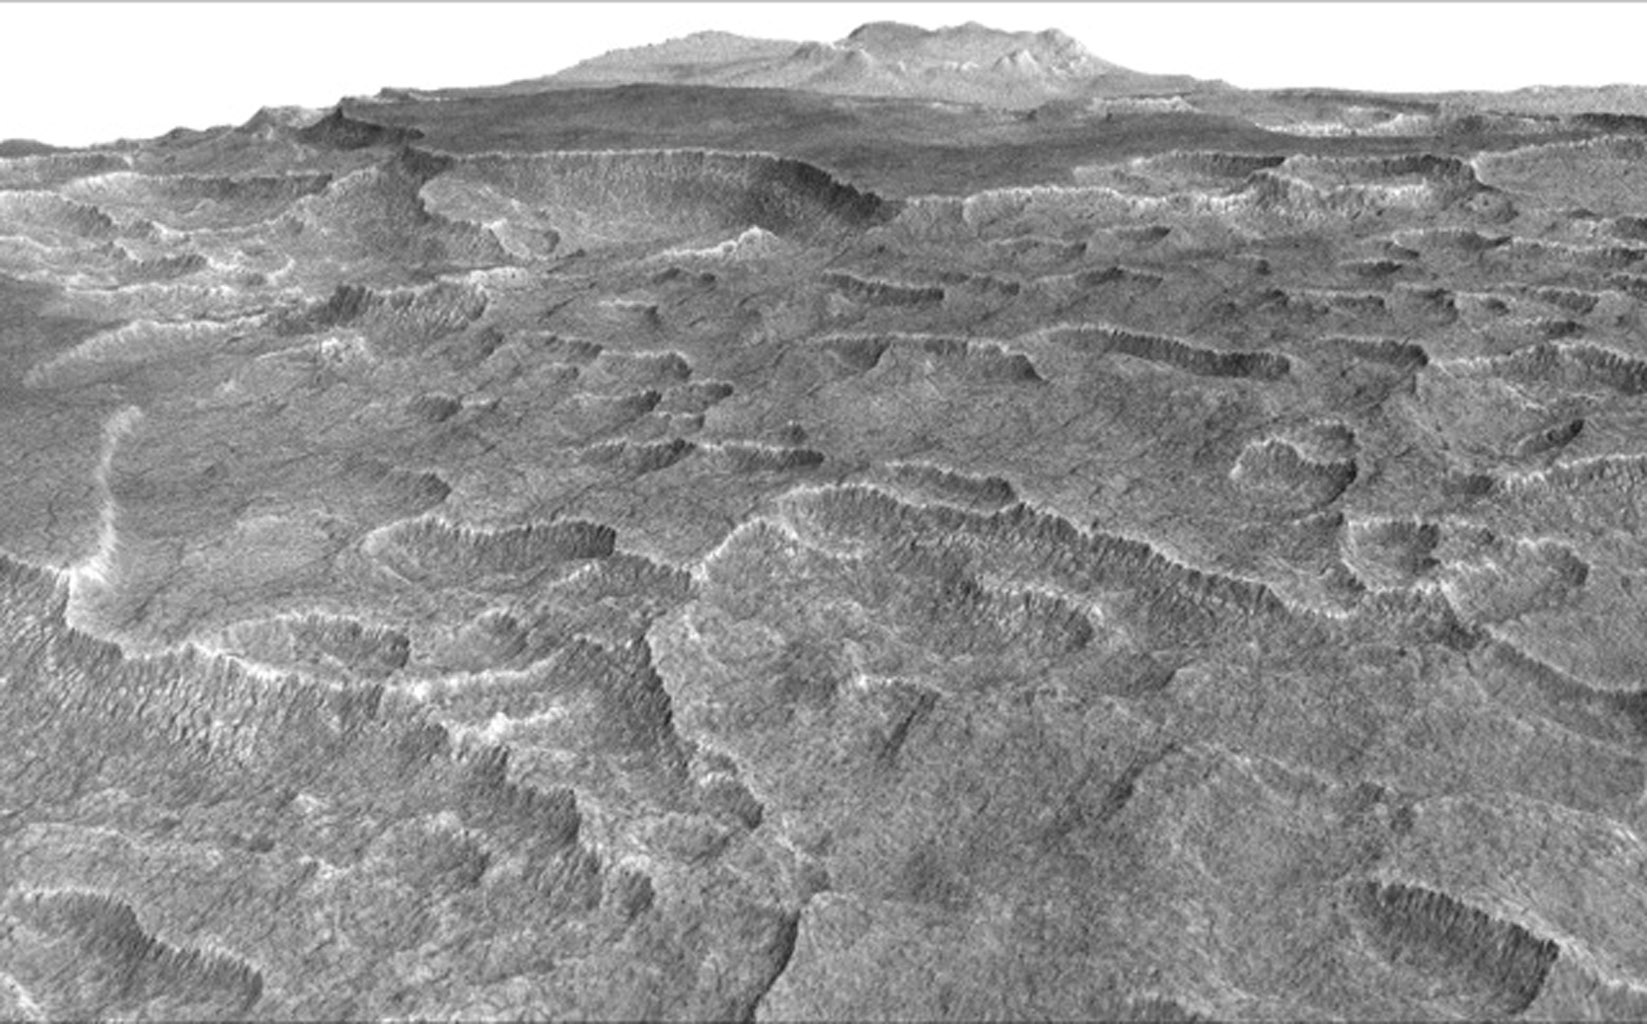 This vertically exaggerated view shows scalloped depressions in Mars' Utopia Planitia region, one of the area's distinctive textures that prompted researchers to check for underground ice, using ground-penetrating radar aboard NASA's Mars Reconnaissance Orbiter.